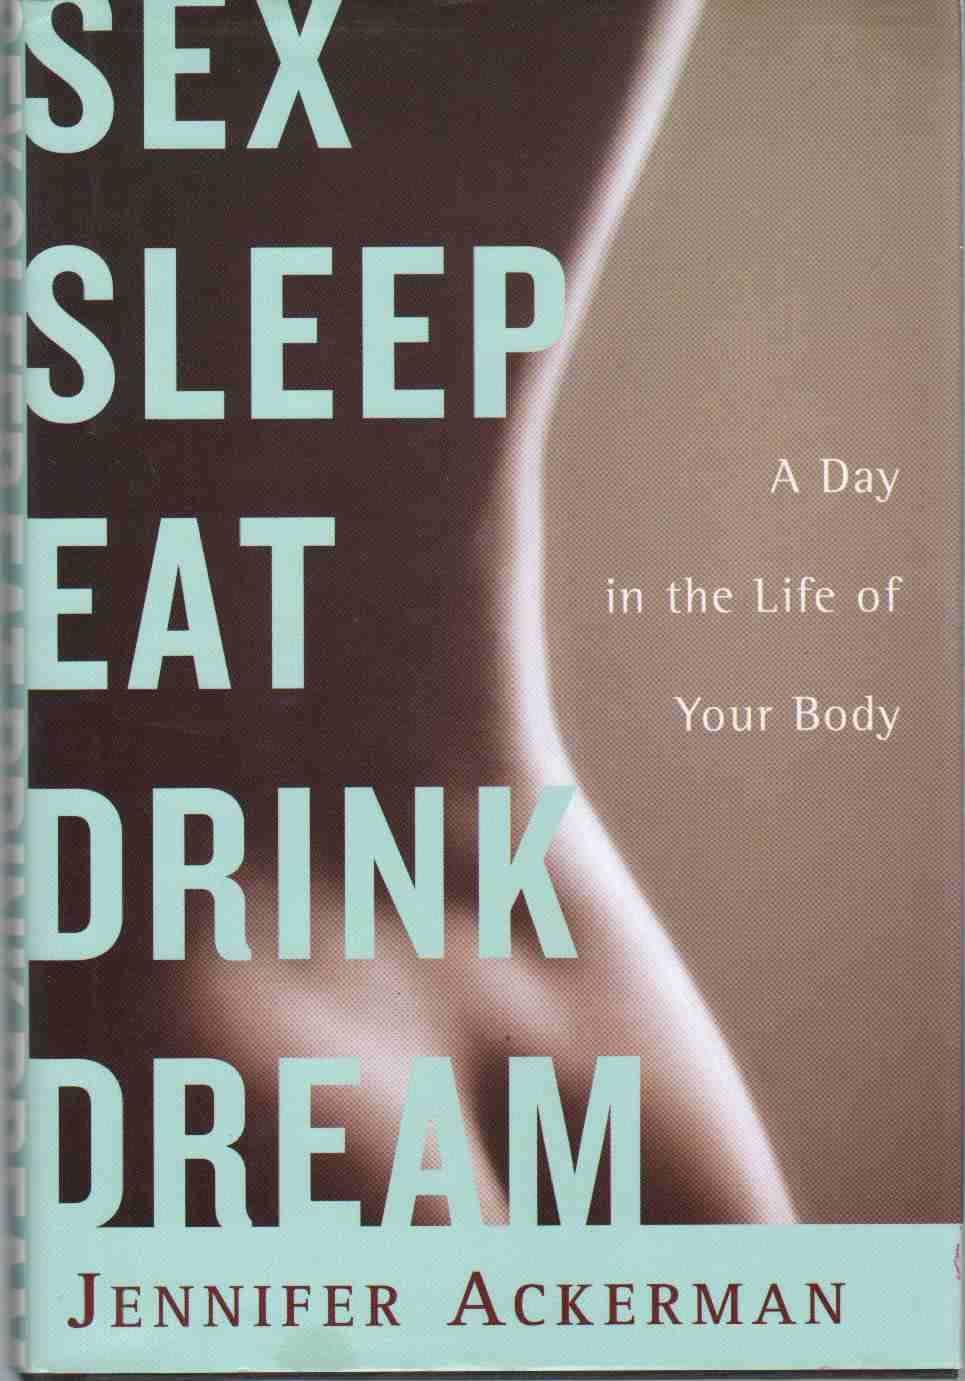 SEX SLEEP EAT DRINK DREAM A Day in the Life of Your Body, Ackerman, Jennifer